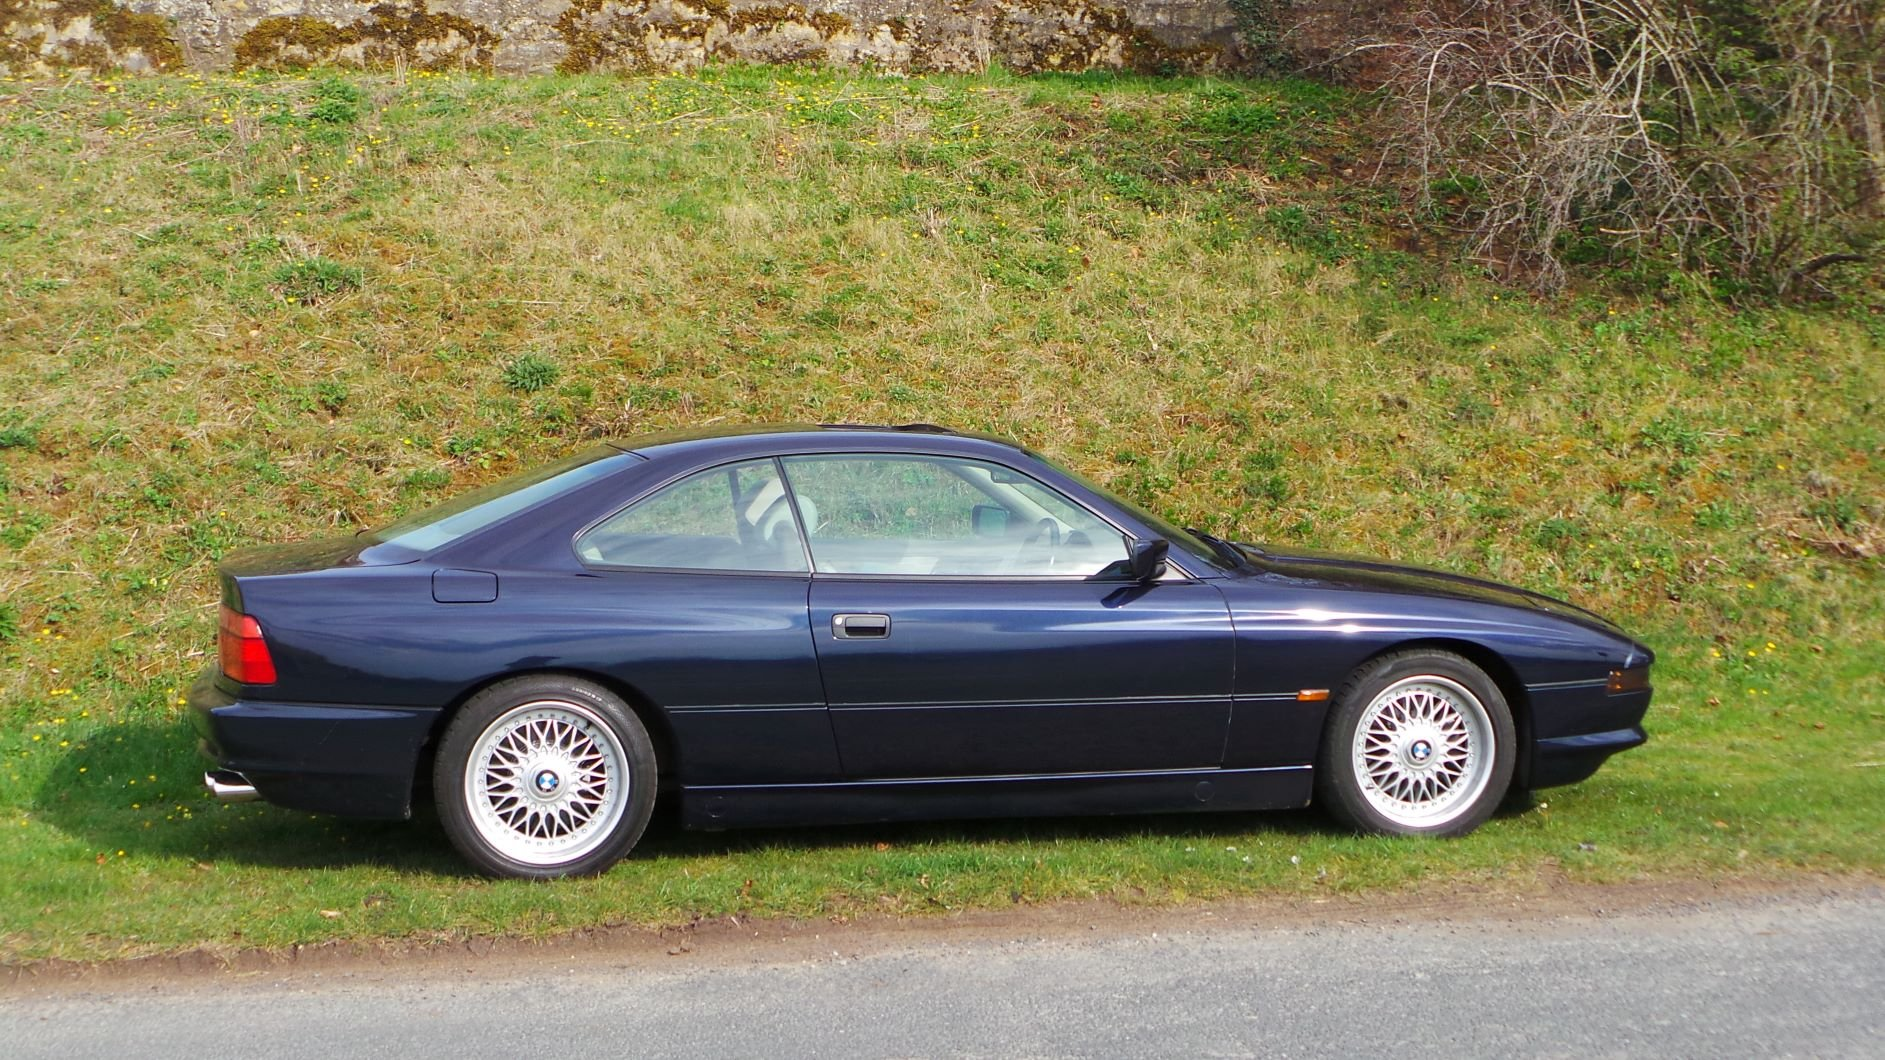 1996 BMW 840 CI Auto For Sale (picture 2 of 6)